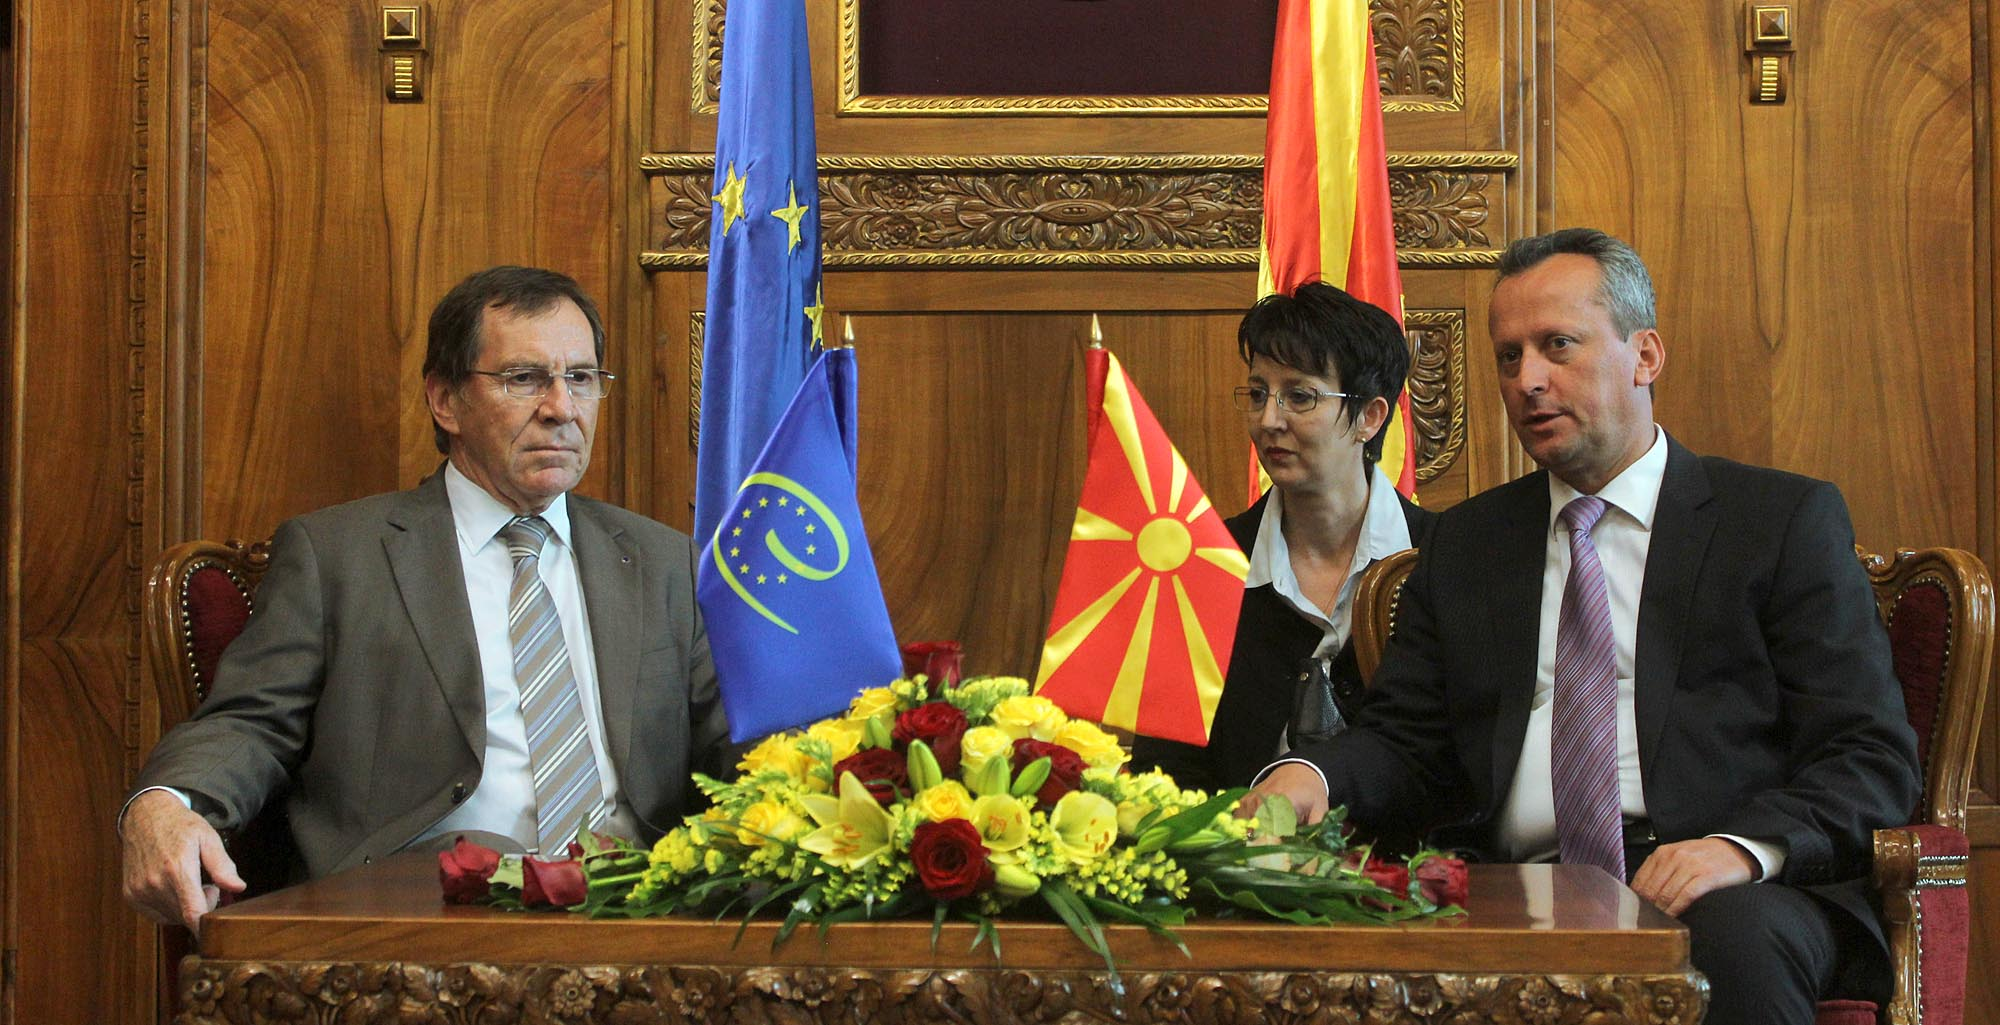 Council of Europe is following the political developments and reforms in FYROM